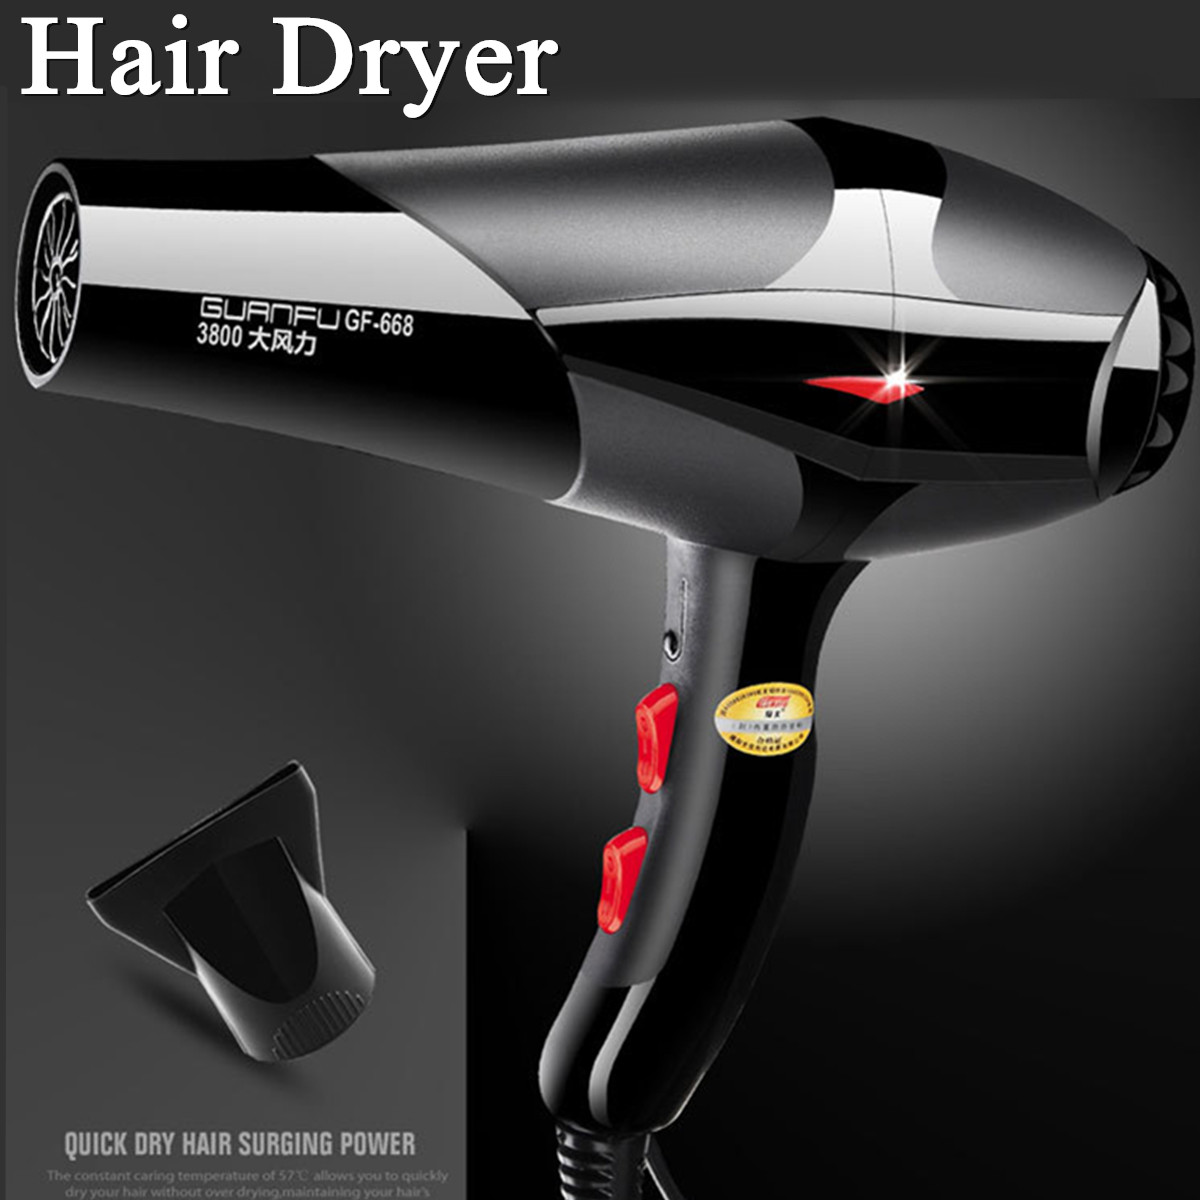 2400W Professional Electric Hair Dryer Salon